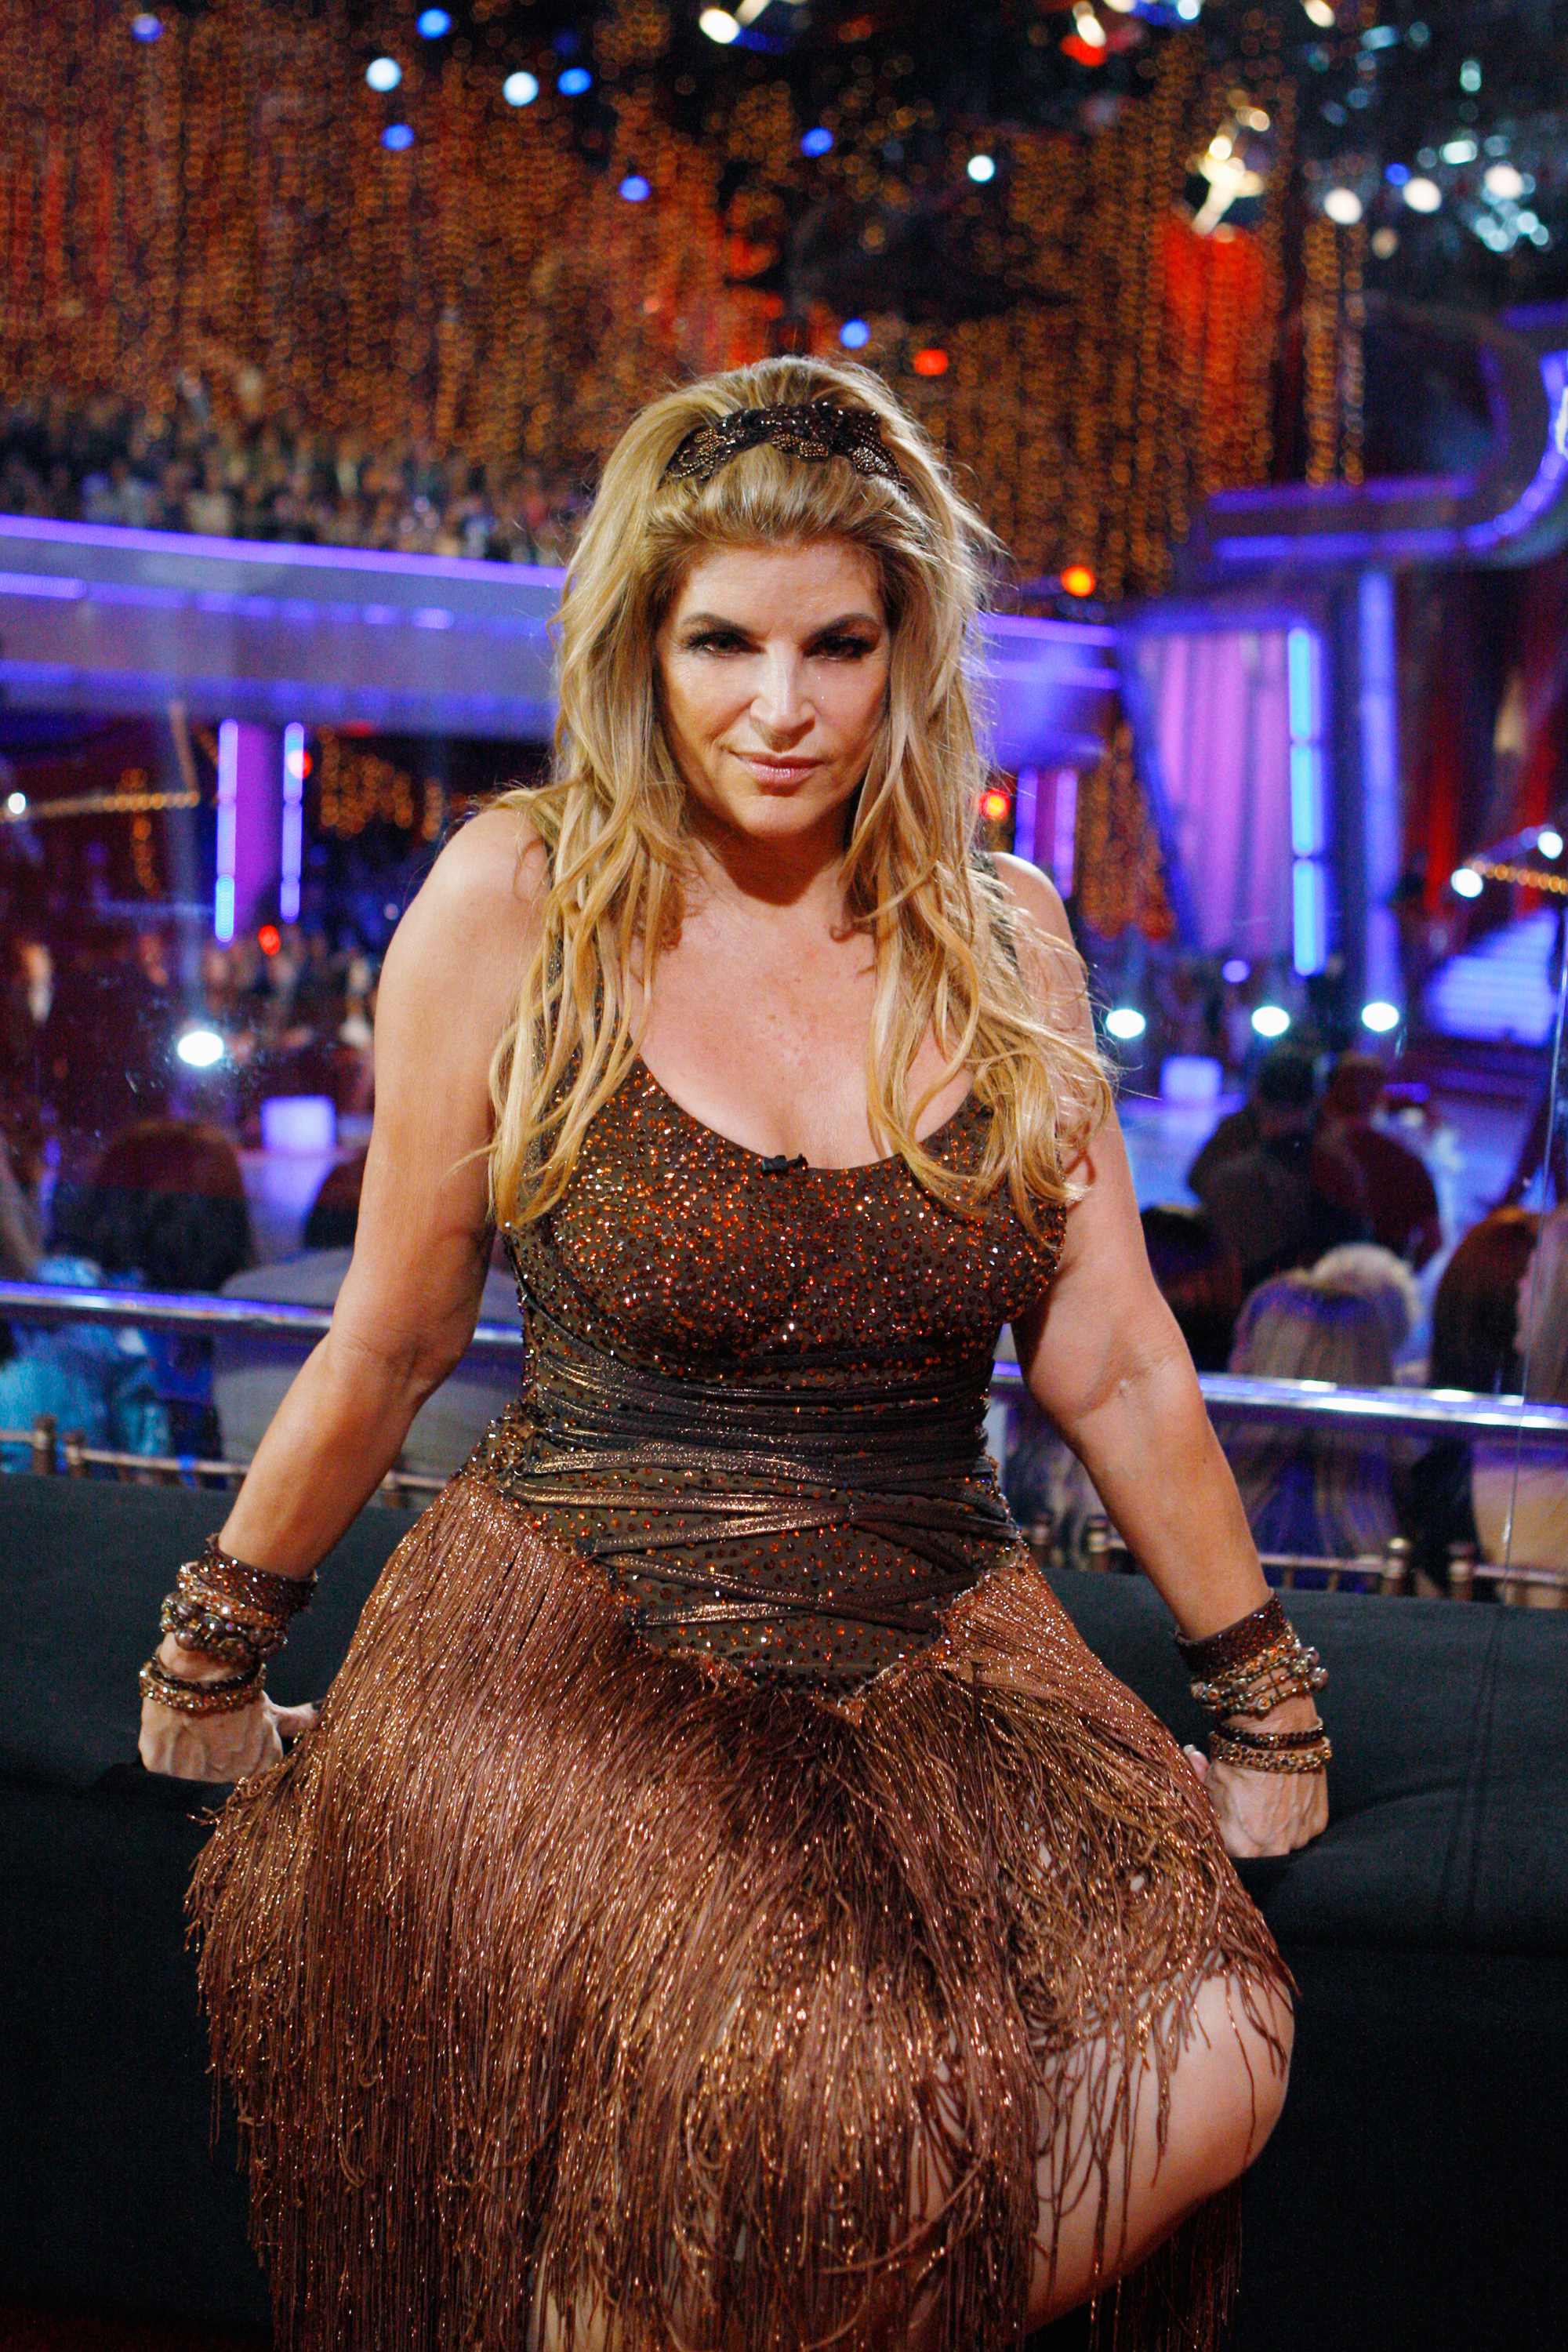 Watch Kirstie Alley born January 12, 1951 (age 67) video